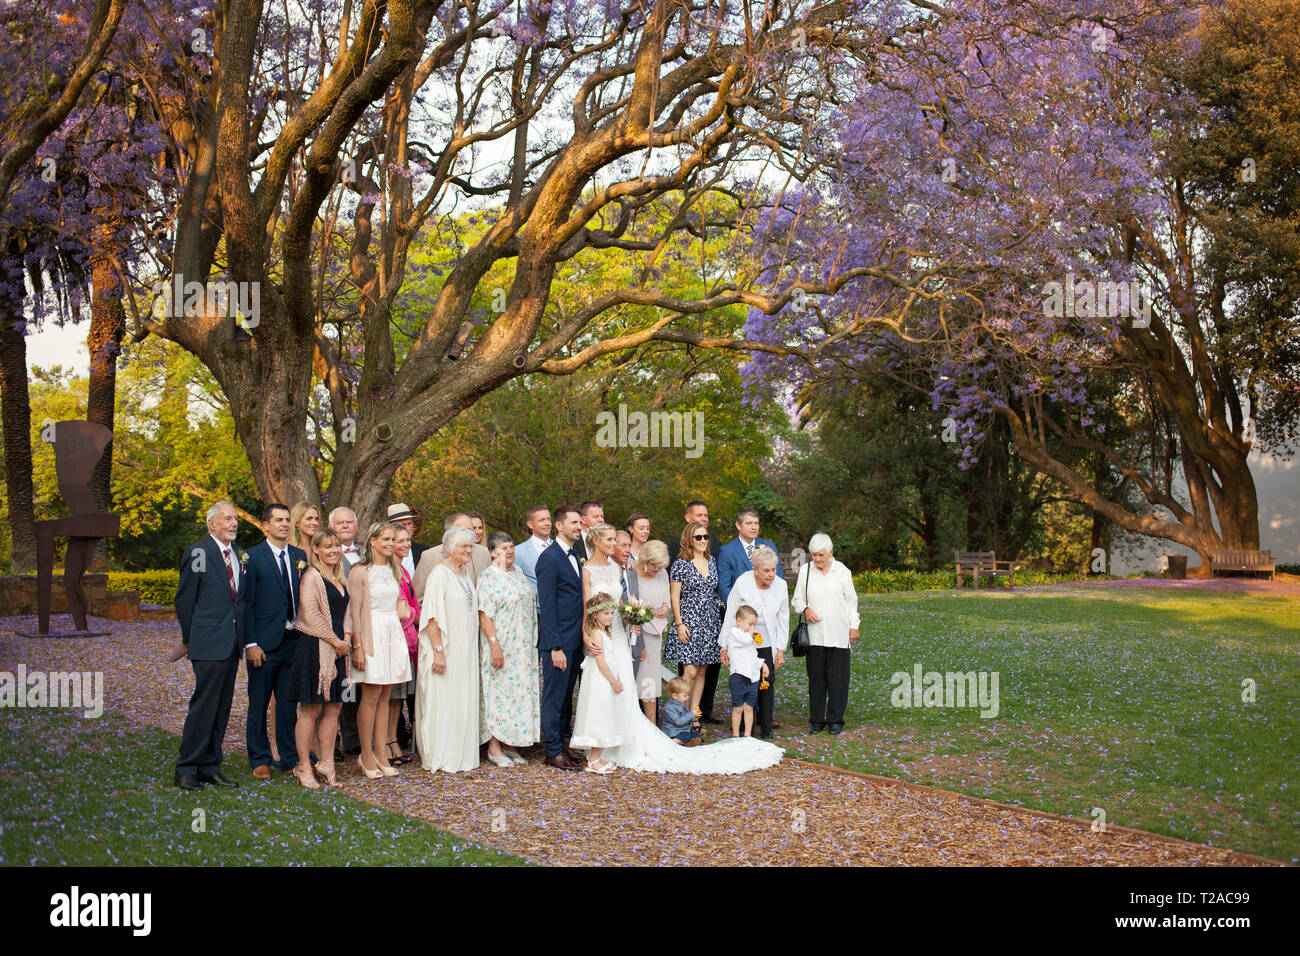 The bride, groom and family at a wedding at St Andrew's School for Girls Stock Photo